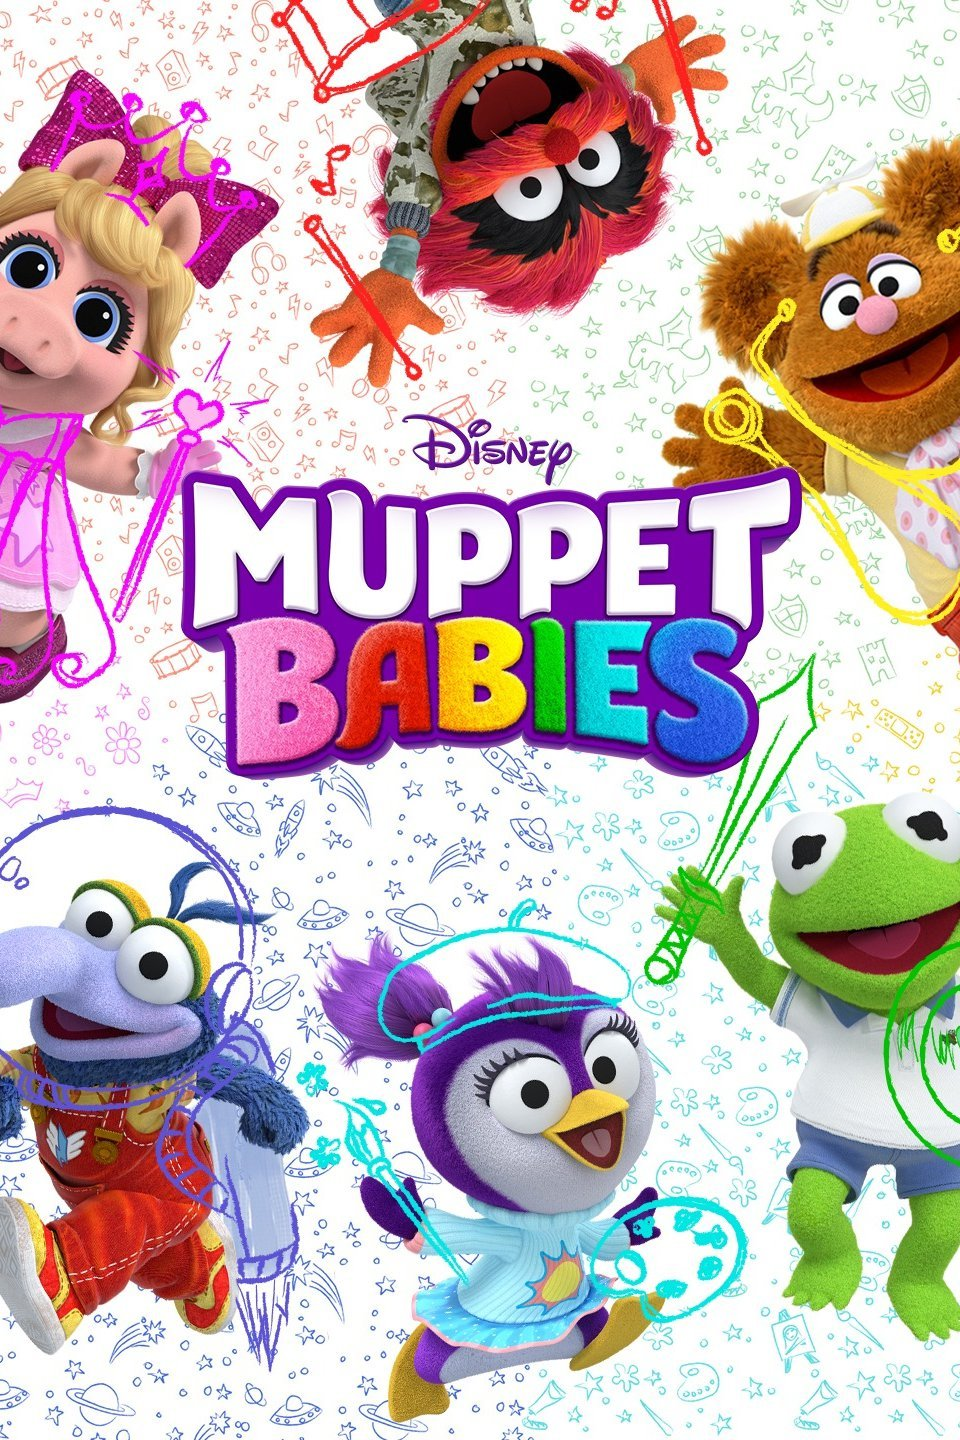 Muppet Babies (2018 TV Series)